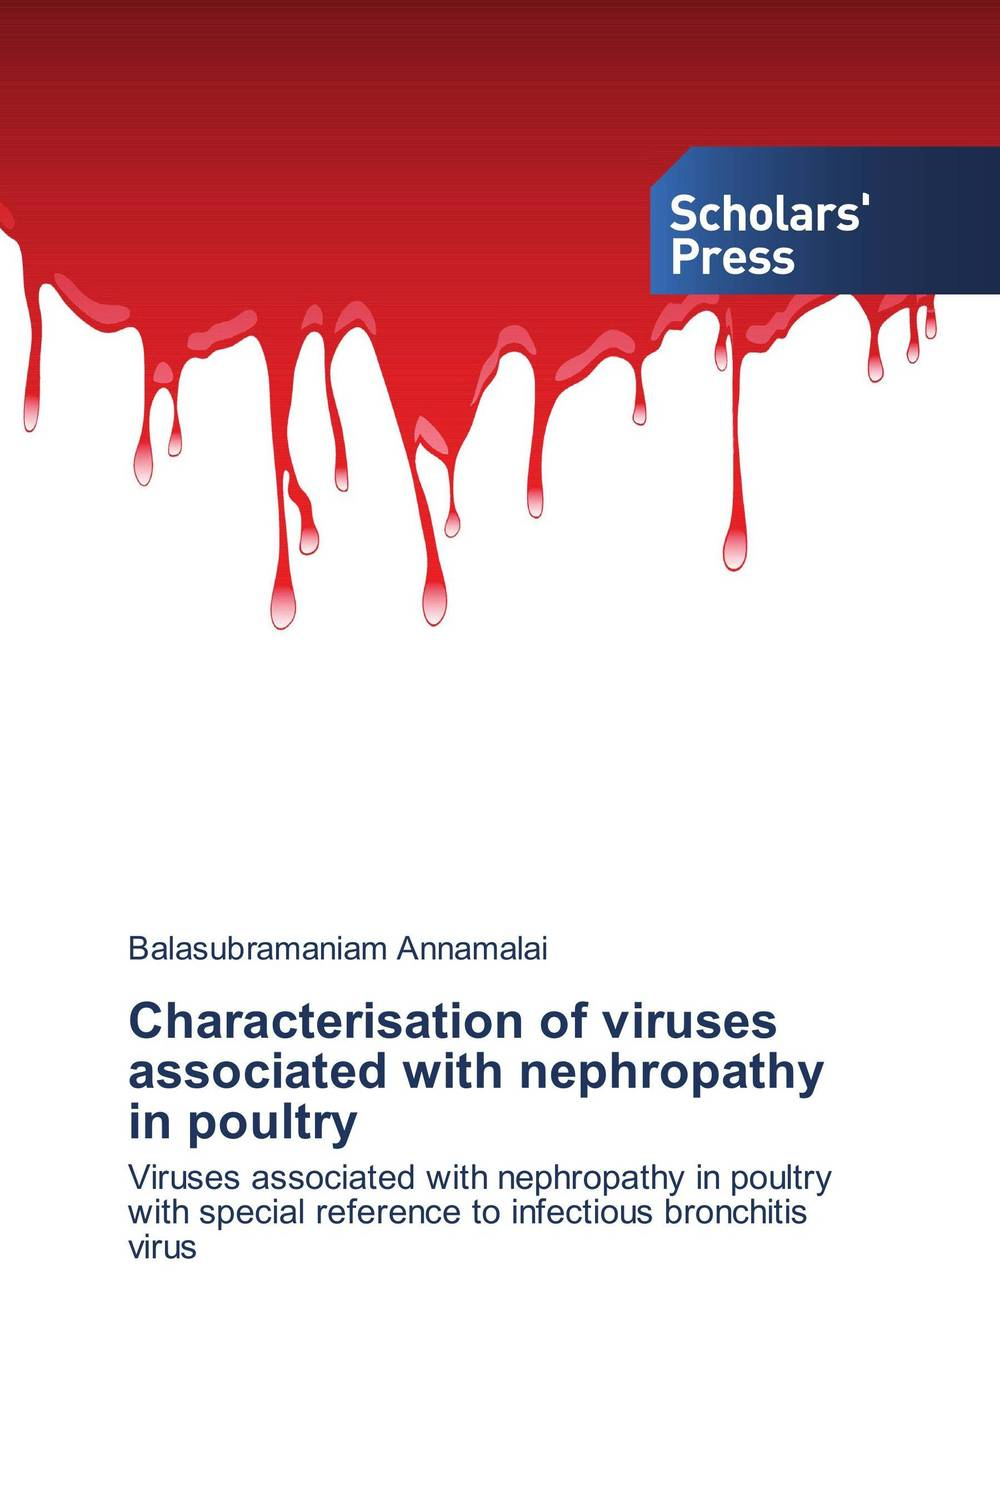 Characterisation of viruses associated with nephropathy in poultry